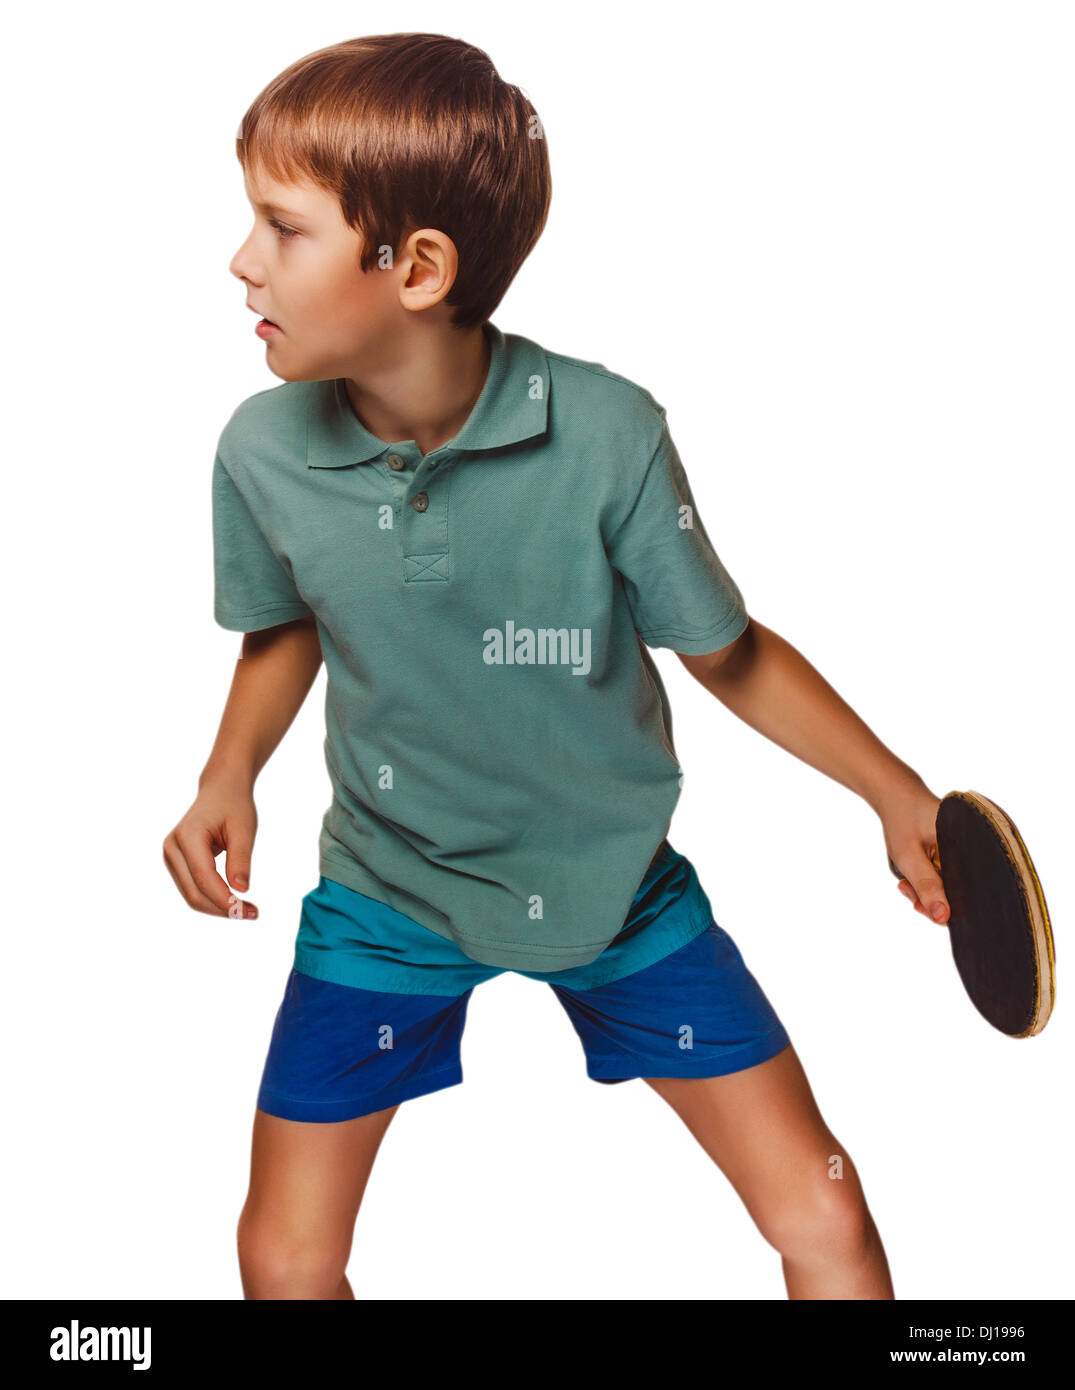 boy blond man table tennis playing ping pong forehand takes topspin isolated on white - Stock Image